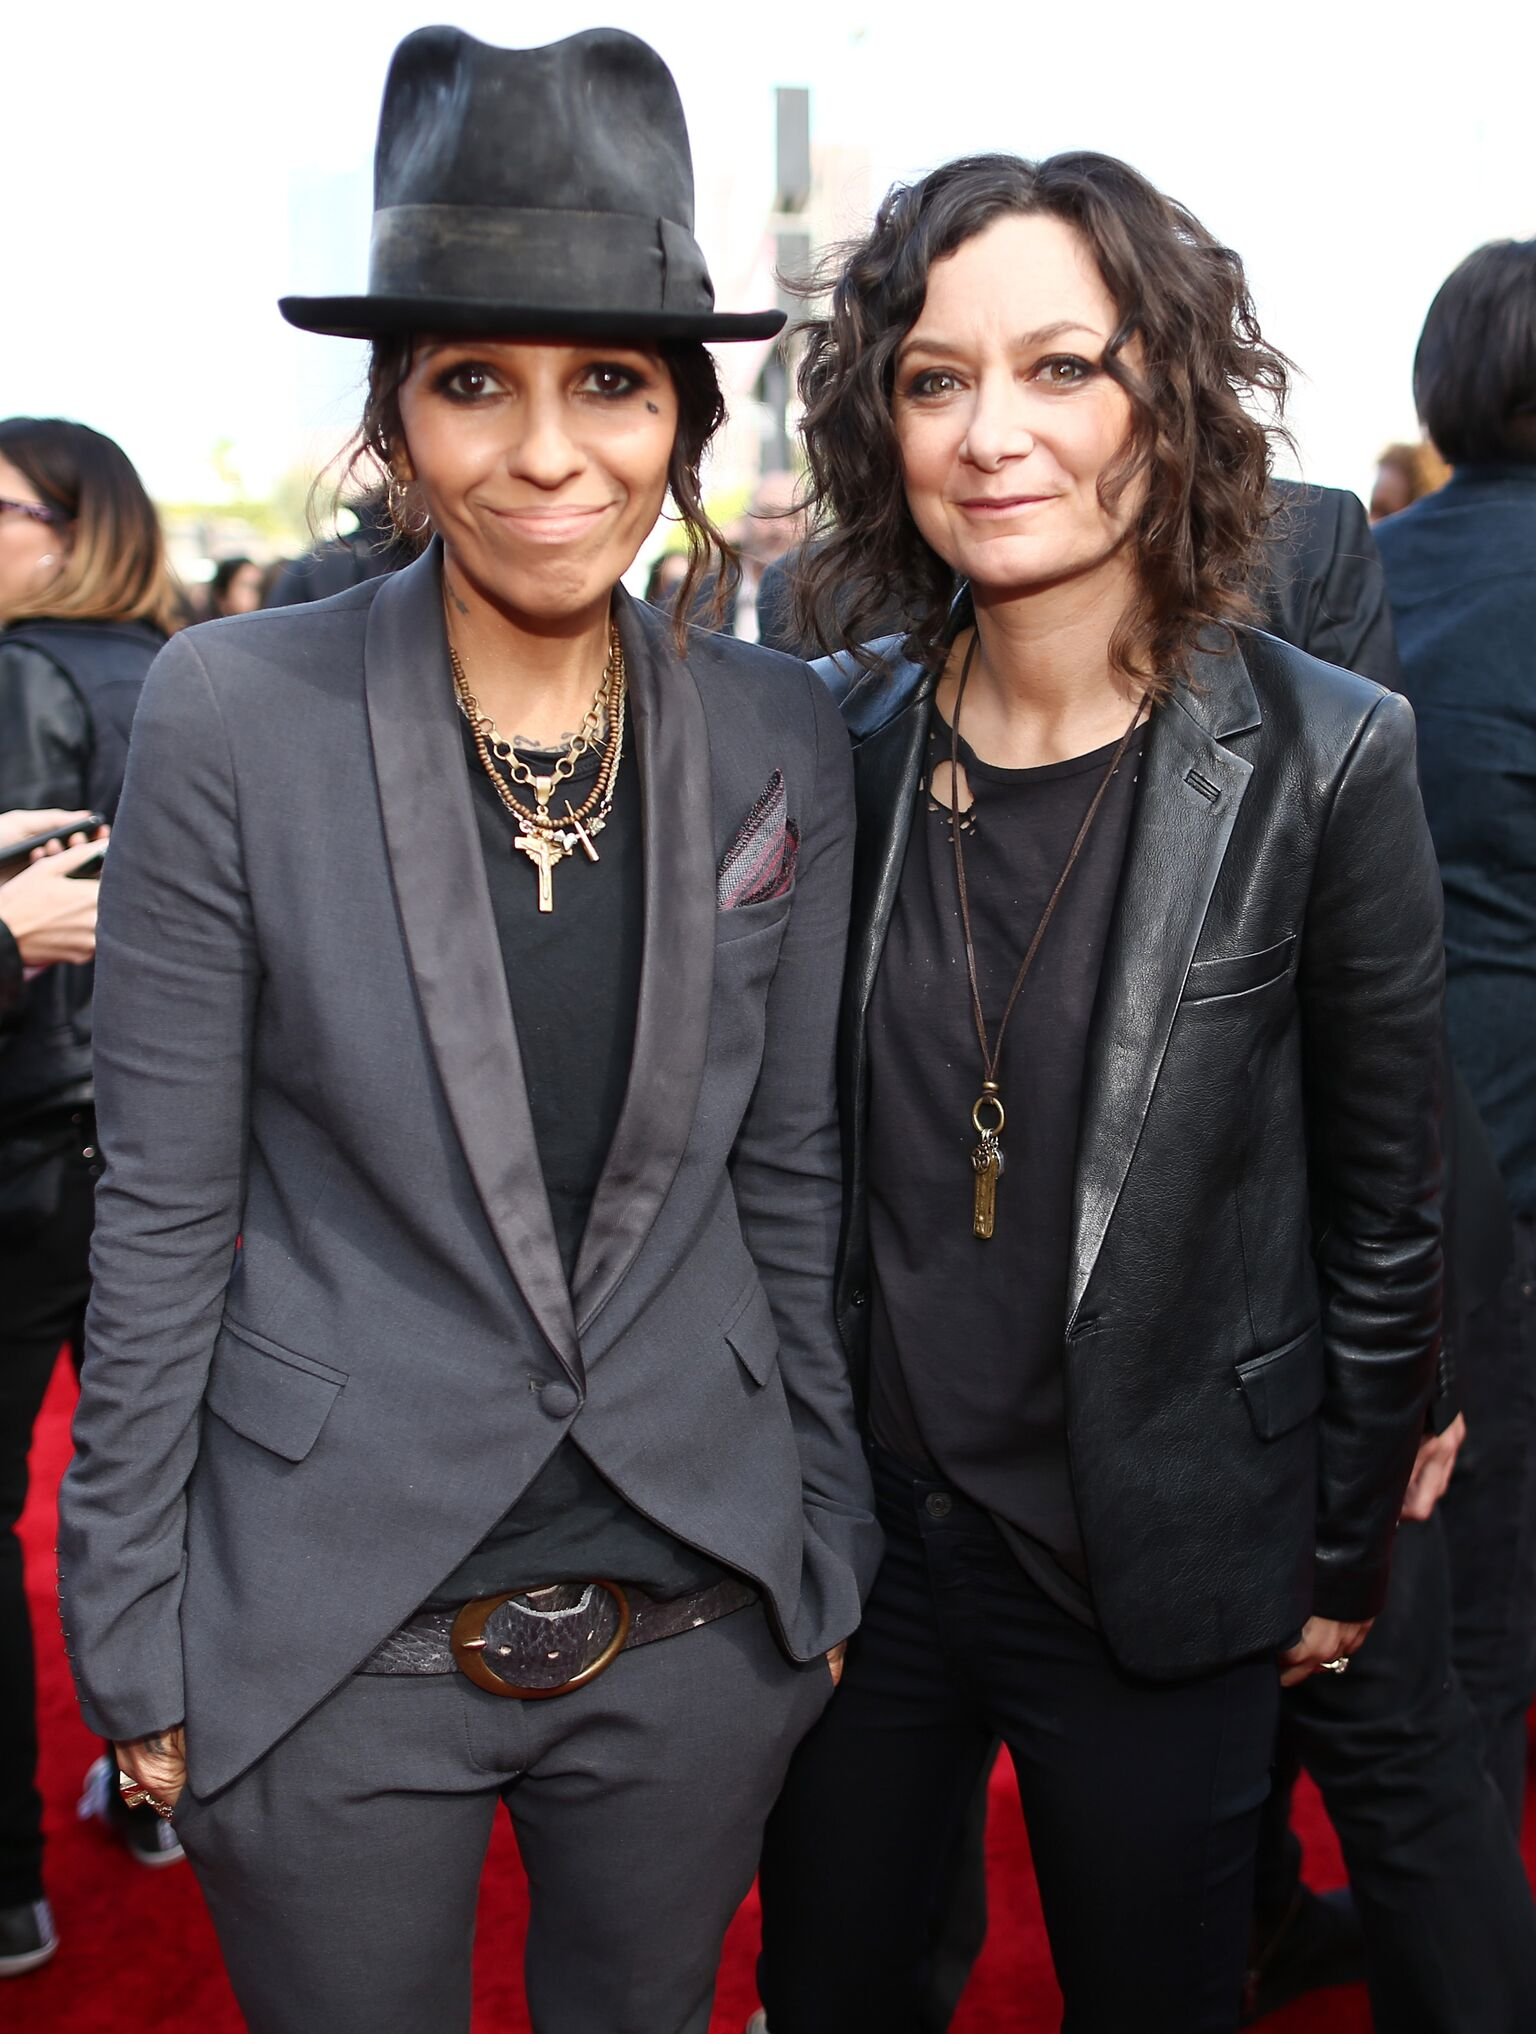 Linda Perry and actress Sara Gilbert attend the 2014 MTV Movie Awards at Nokia Theatre L.A. Live | Getty Images / Global Images Ukraine